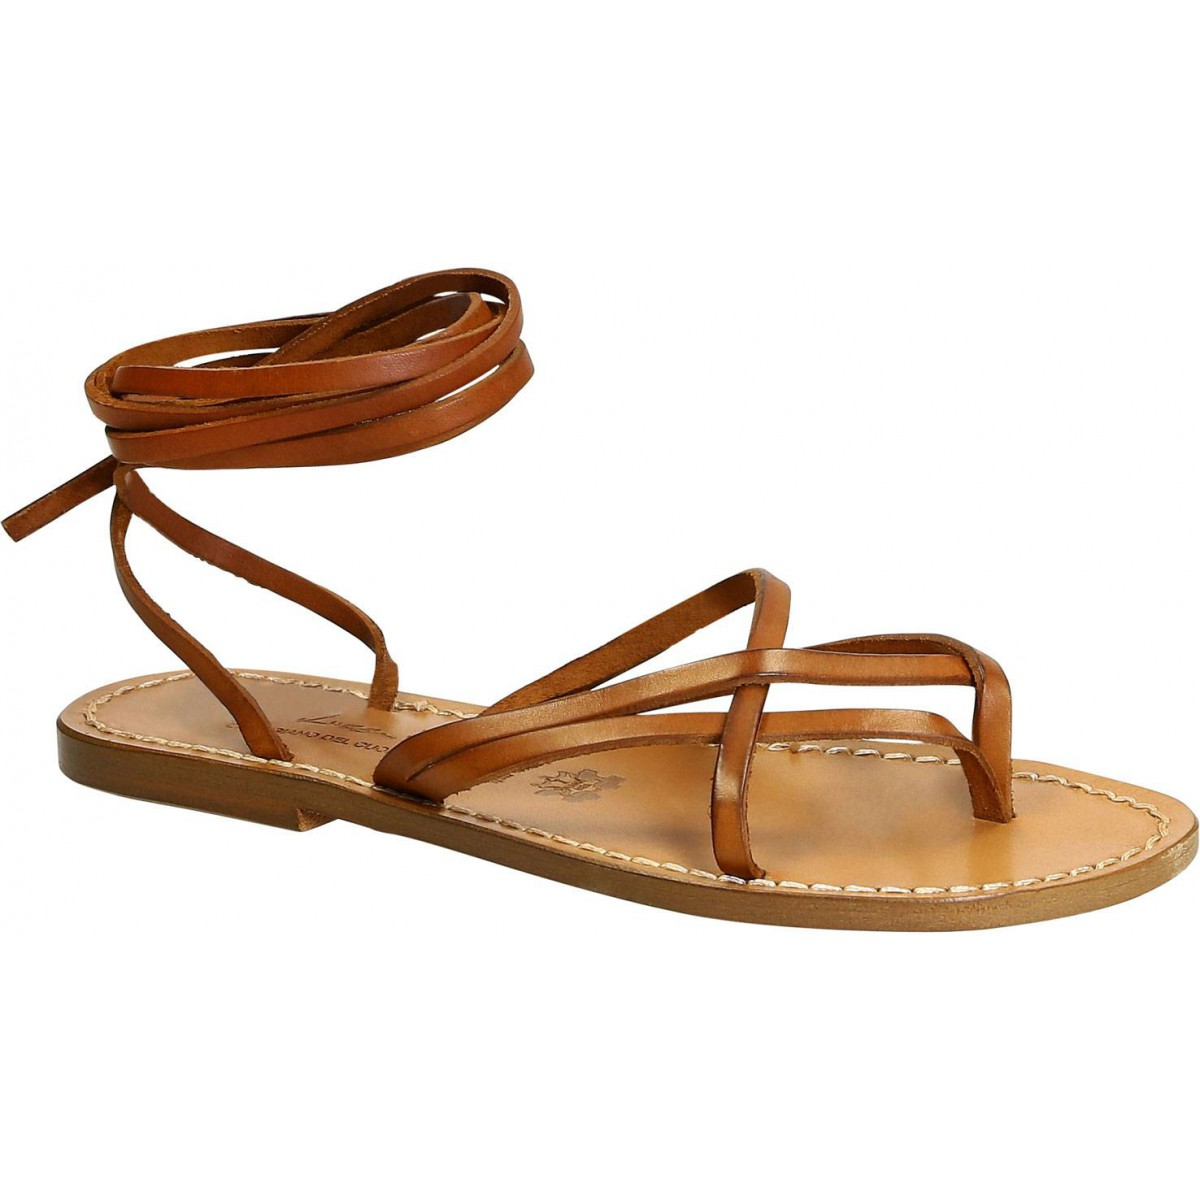 c32e3d0aafb9 Women s vintage cuir strappy leather sandals handmade in Italy. Loading zoom